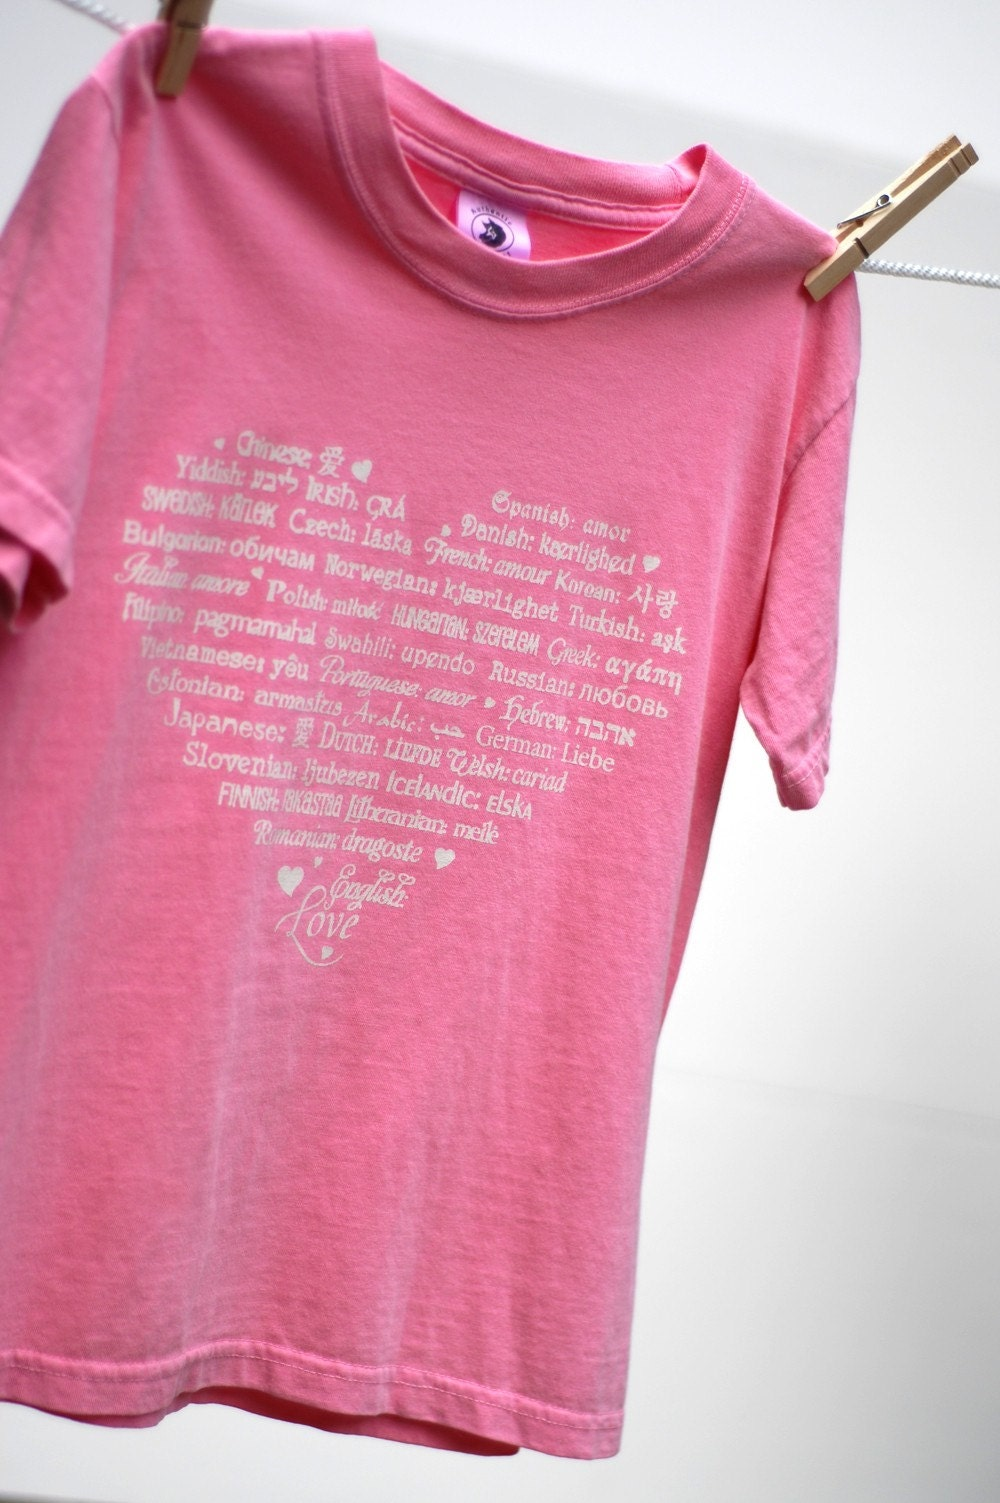 LOVE Languages - ShortSleeve T-Shirt - White on Flamingo - Soft and Cozy YOUTH Sizes